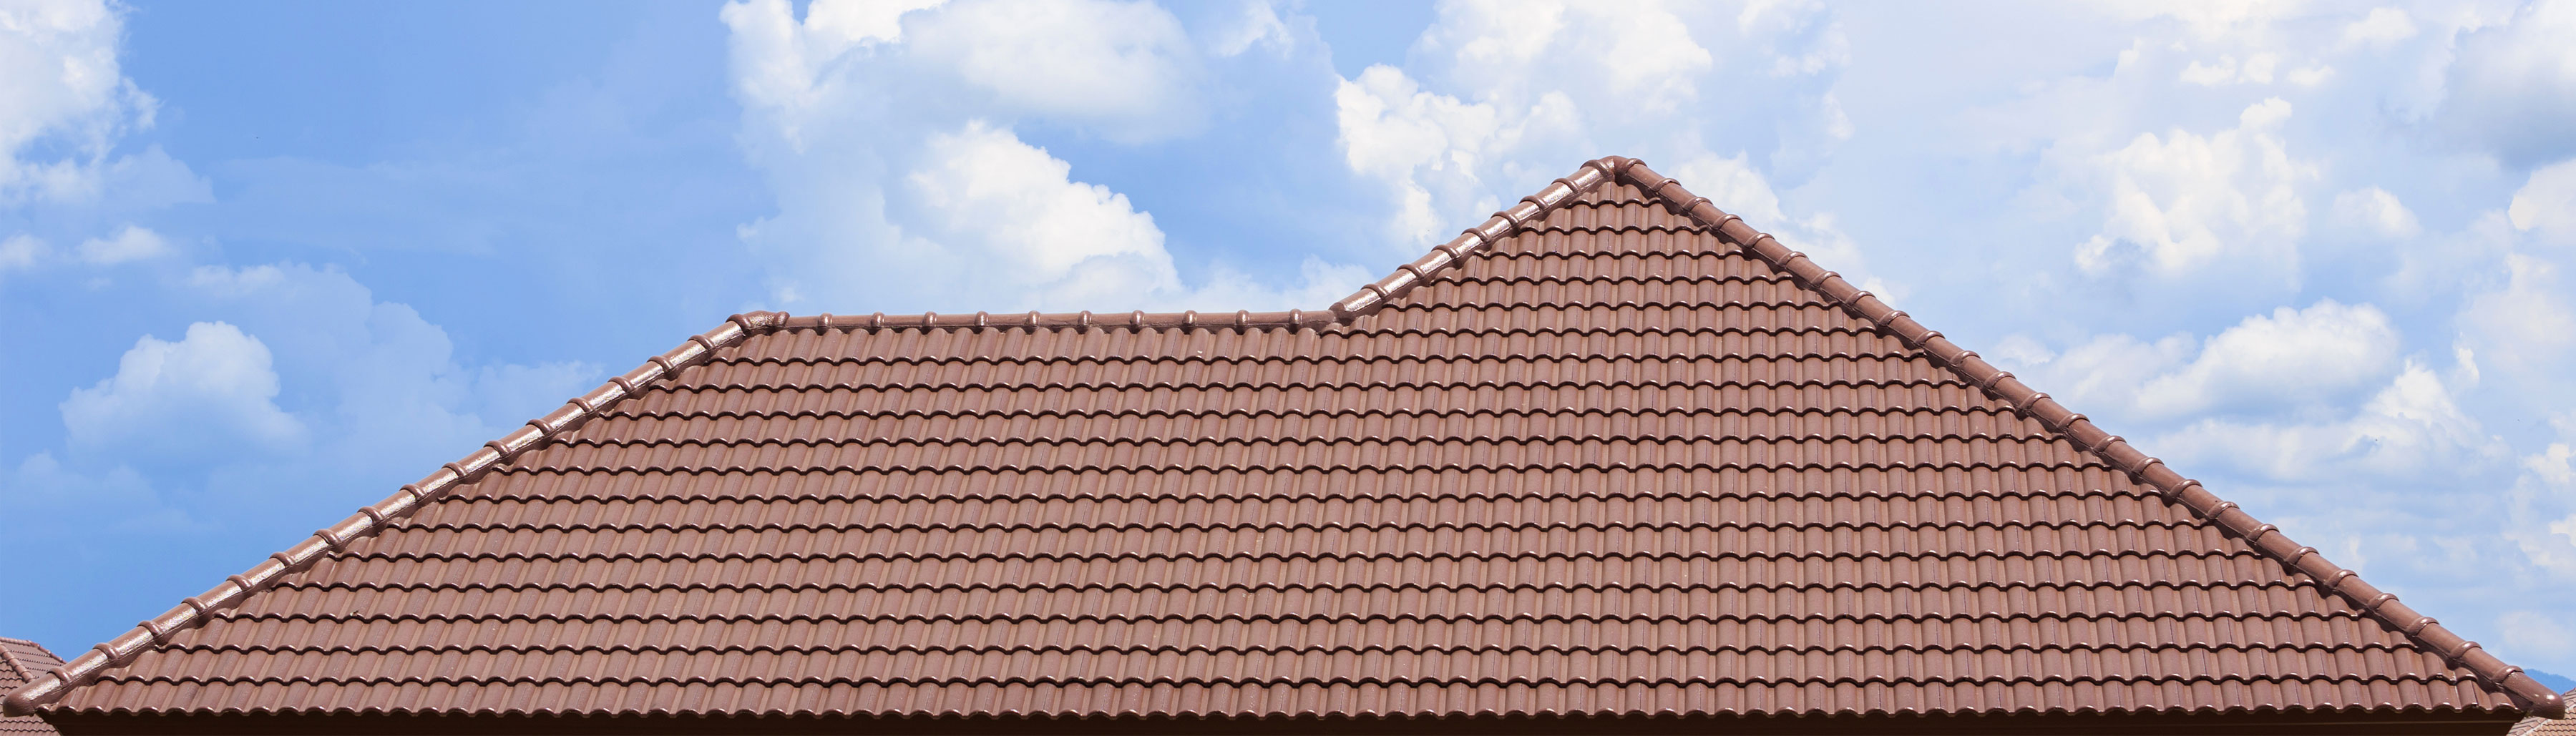 Admiral Roofing Specialist Roofers In Swindon And Oxford